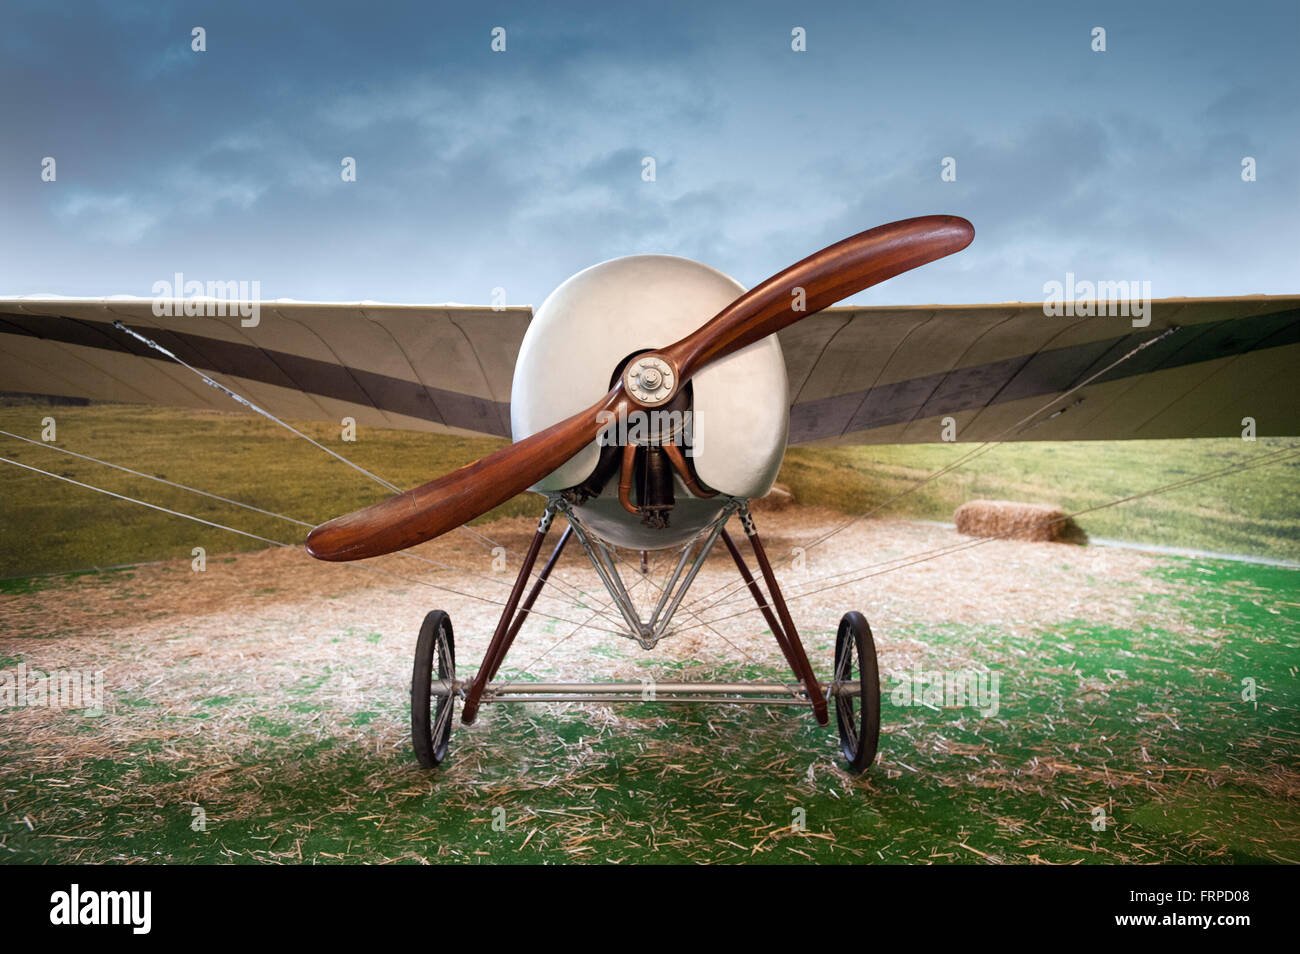 Old vintage monoplane airplane with a wooden propeller parked in a field in a landscape, front view - Stock Image